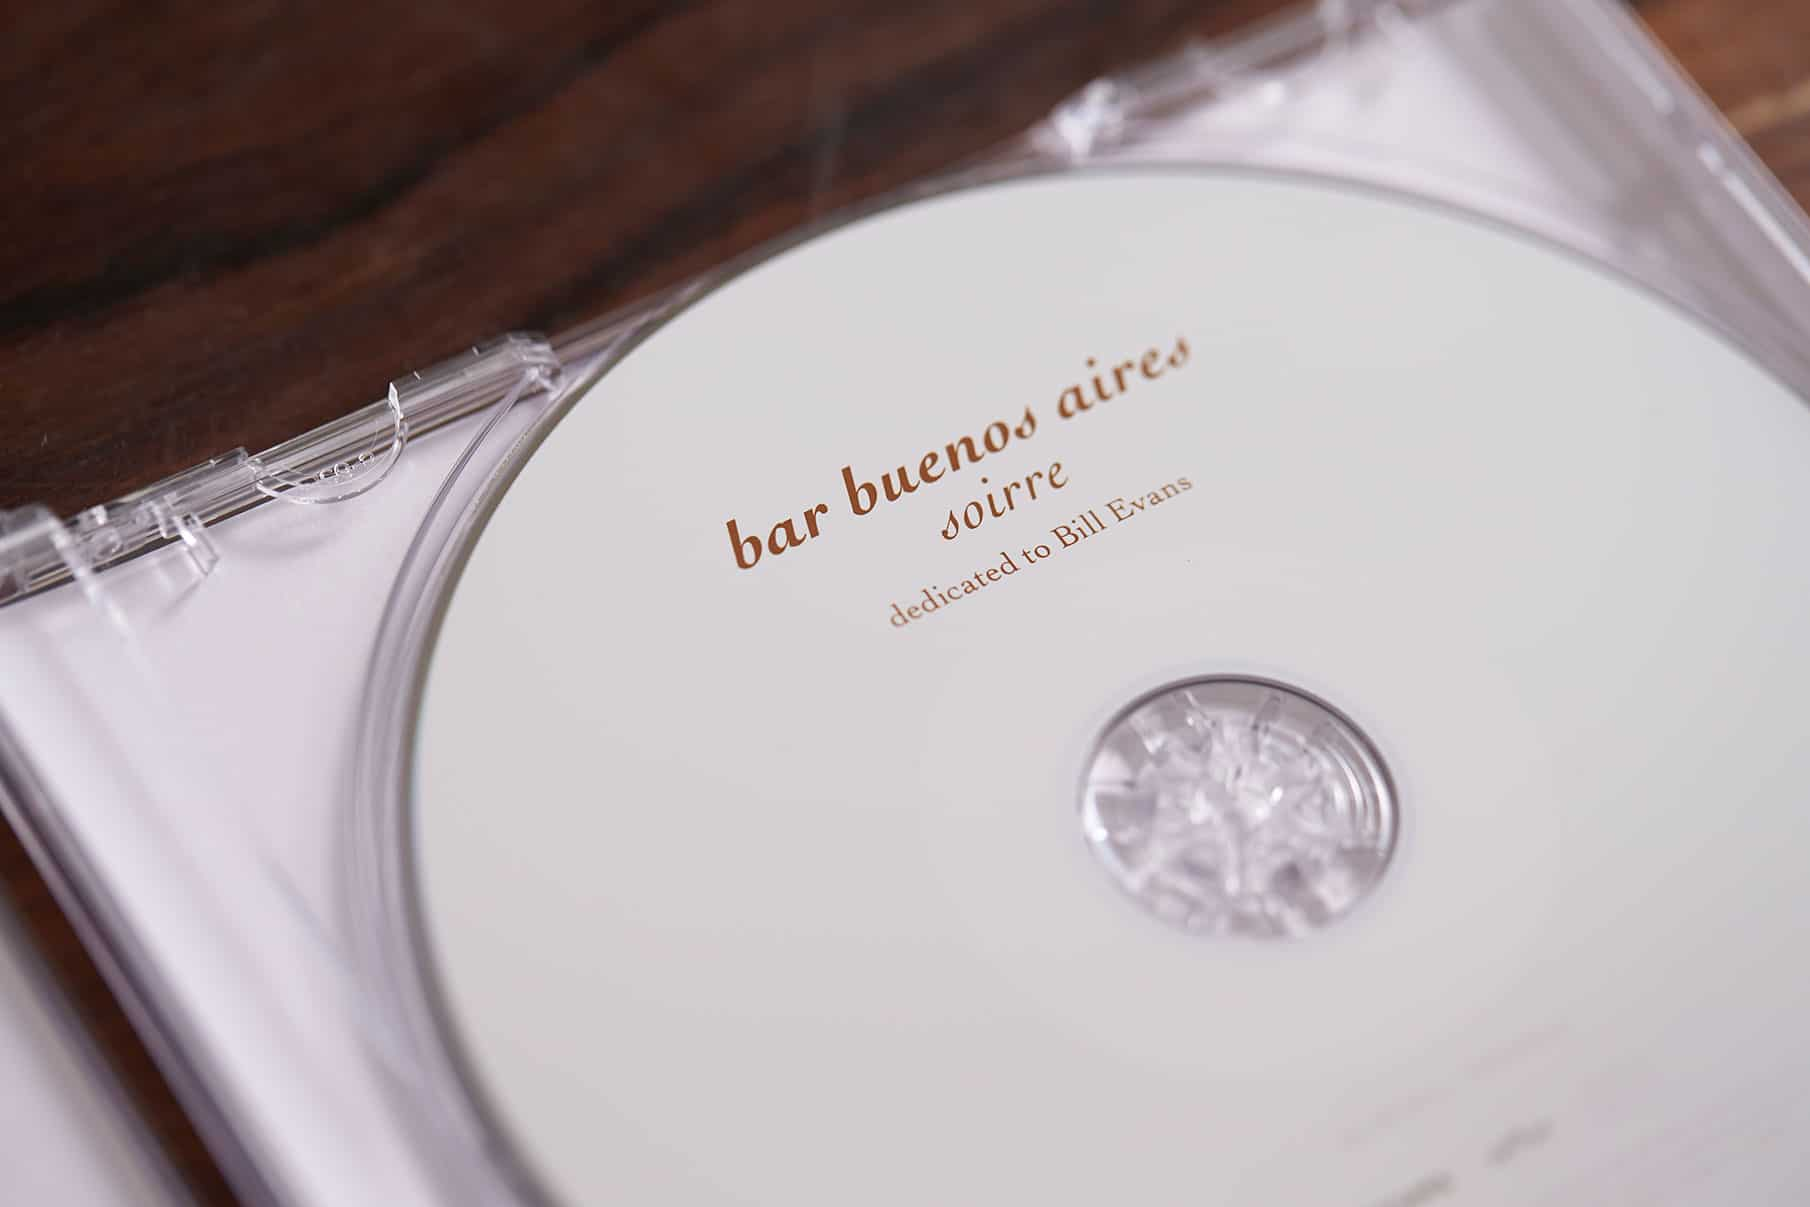 bar buenos aires soirre - CD Cover 4